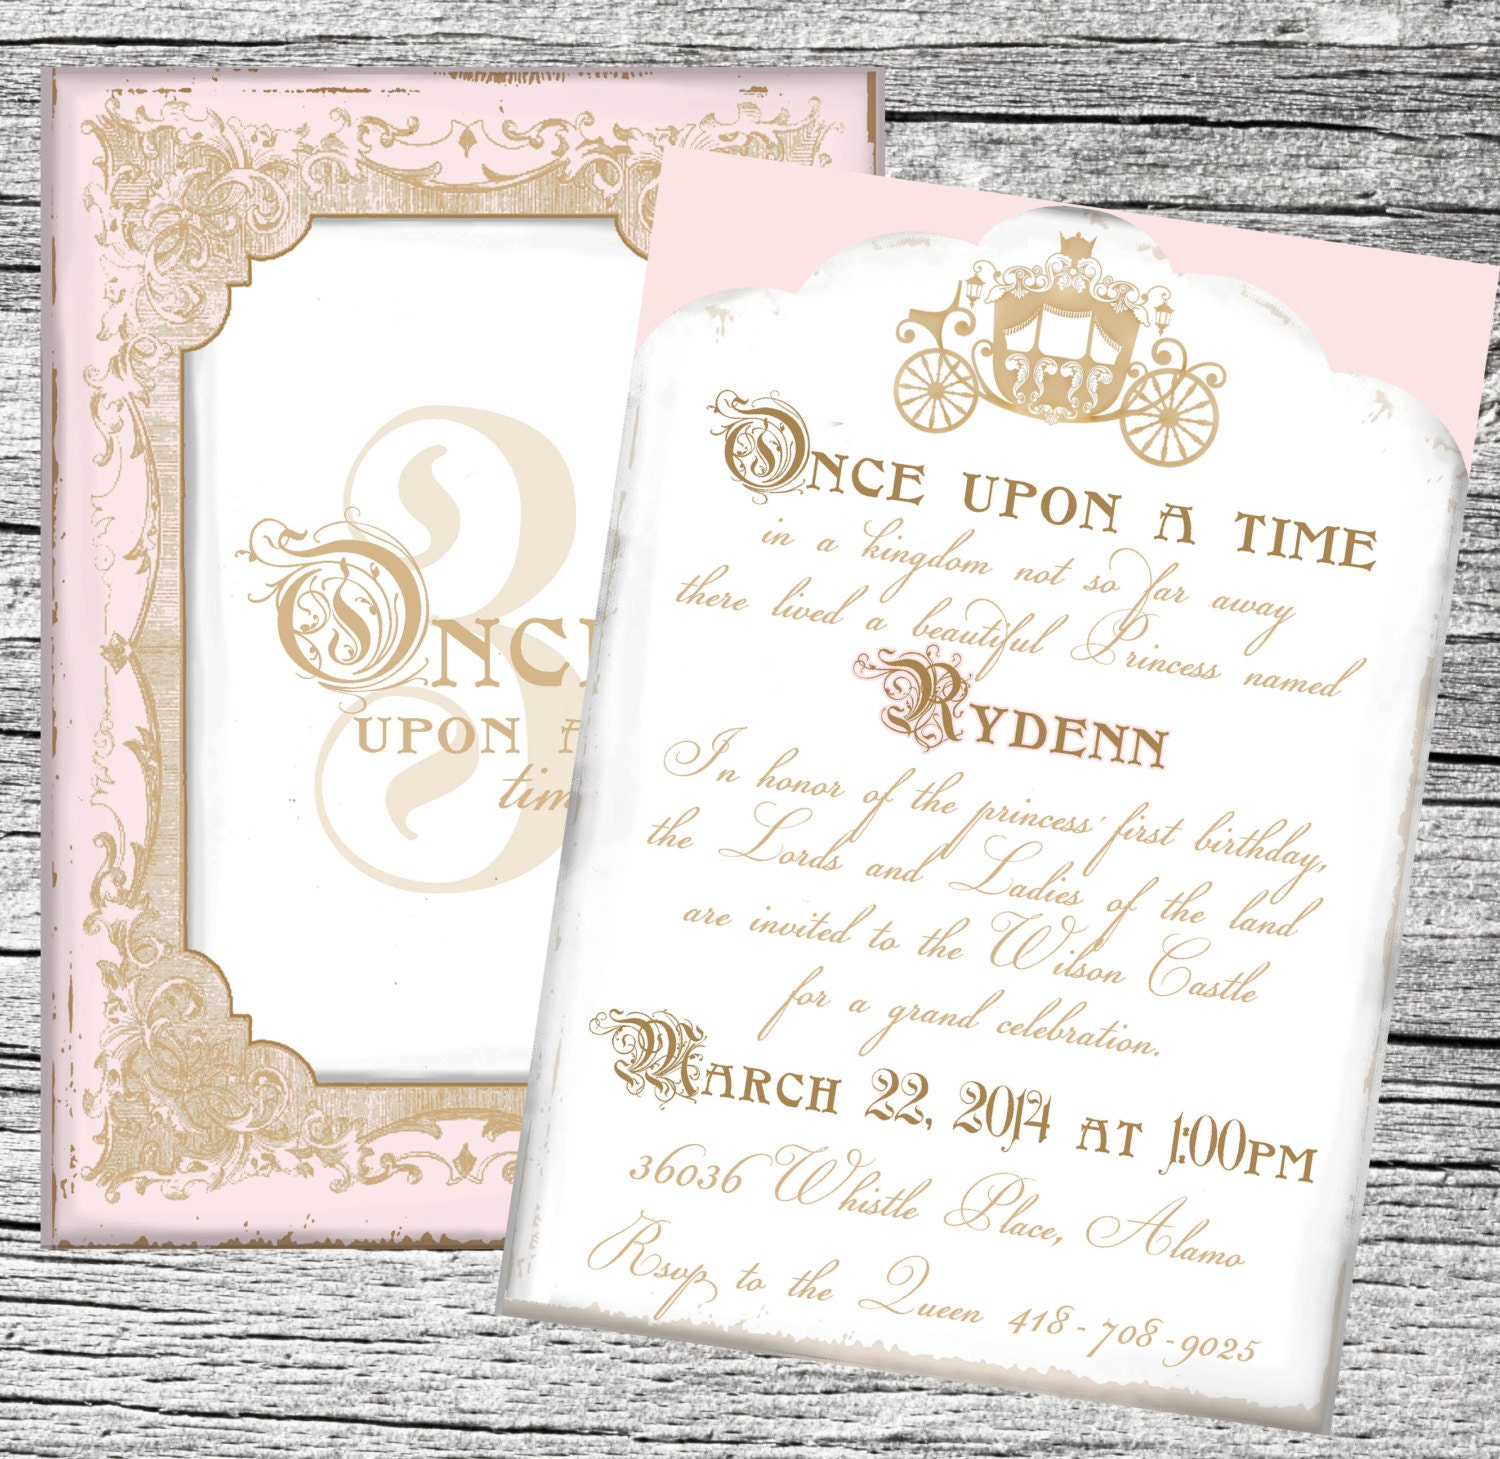 Double Birthday Party Invitations as adorable invitation template